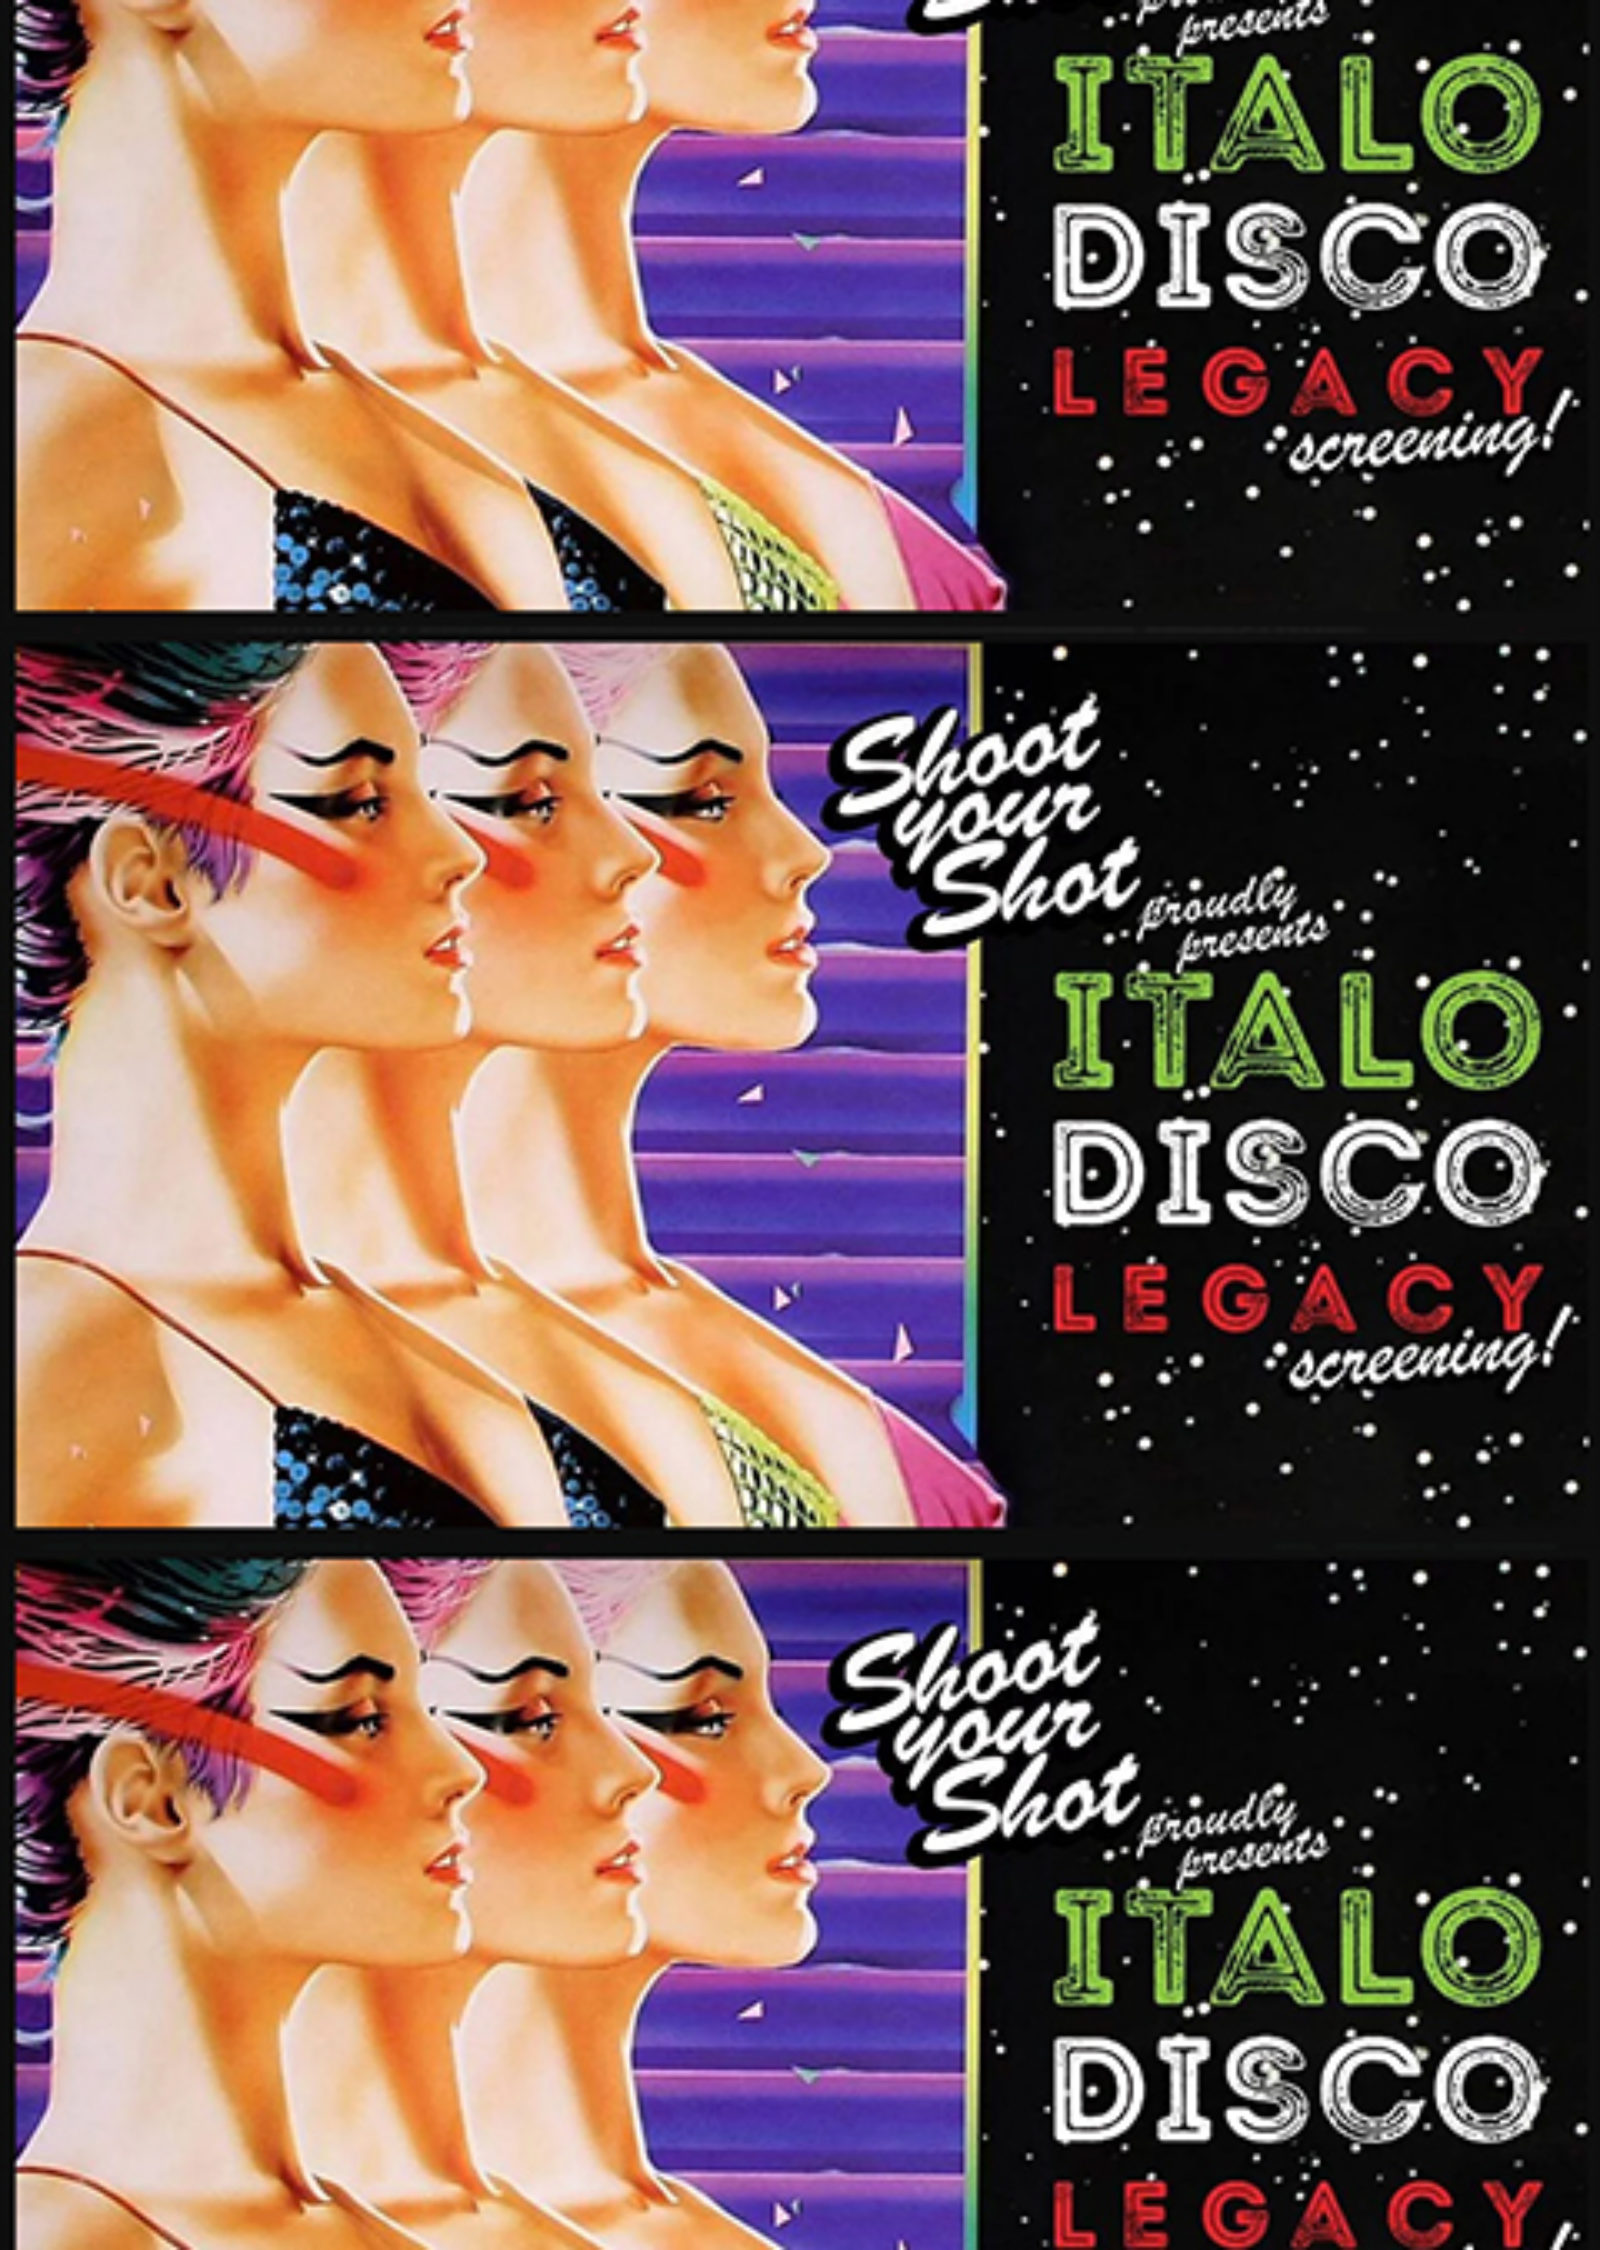 Italo Disco Legacy Screening